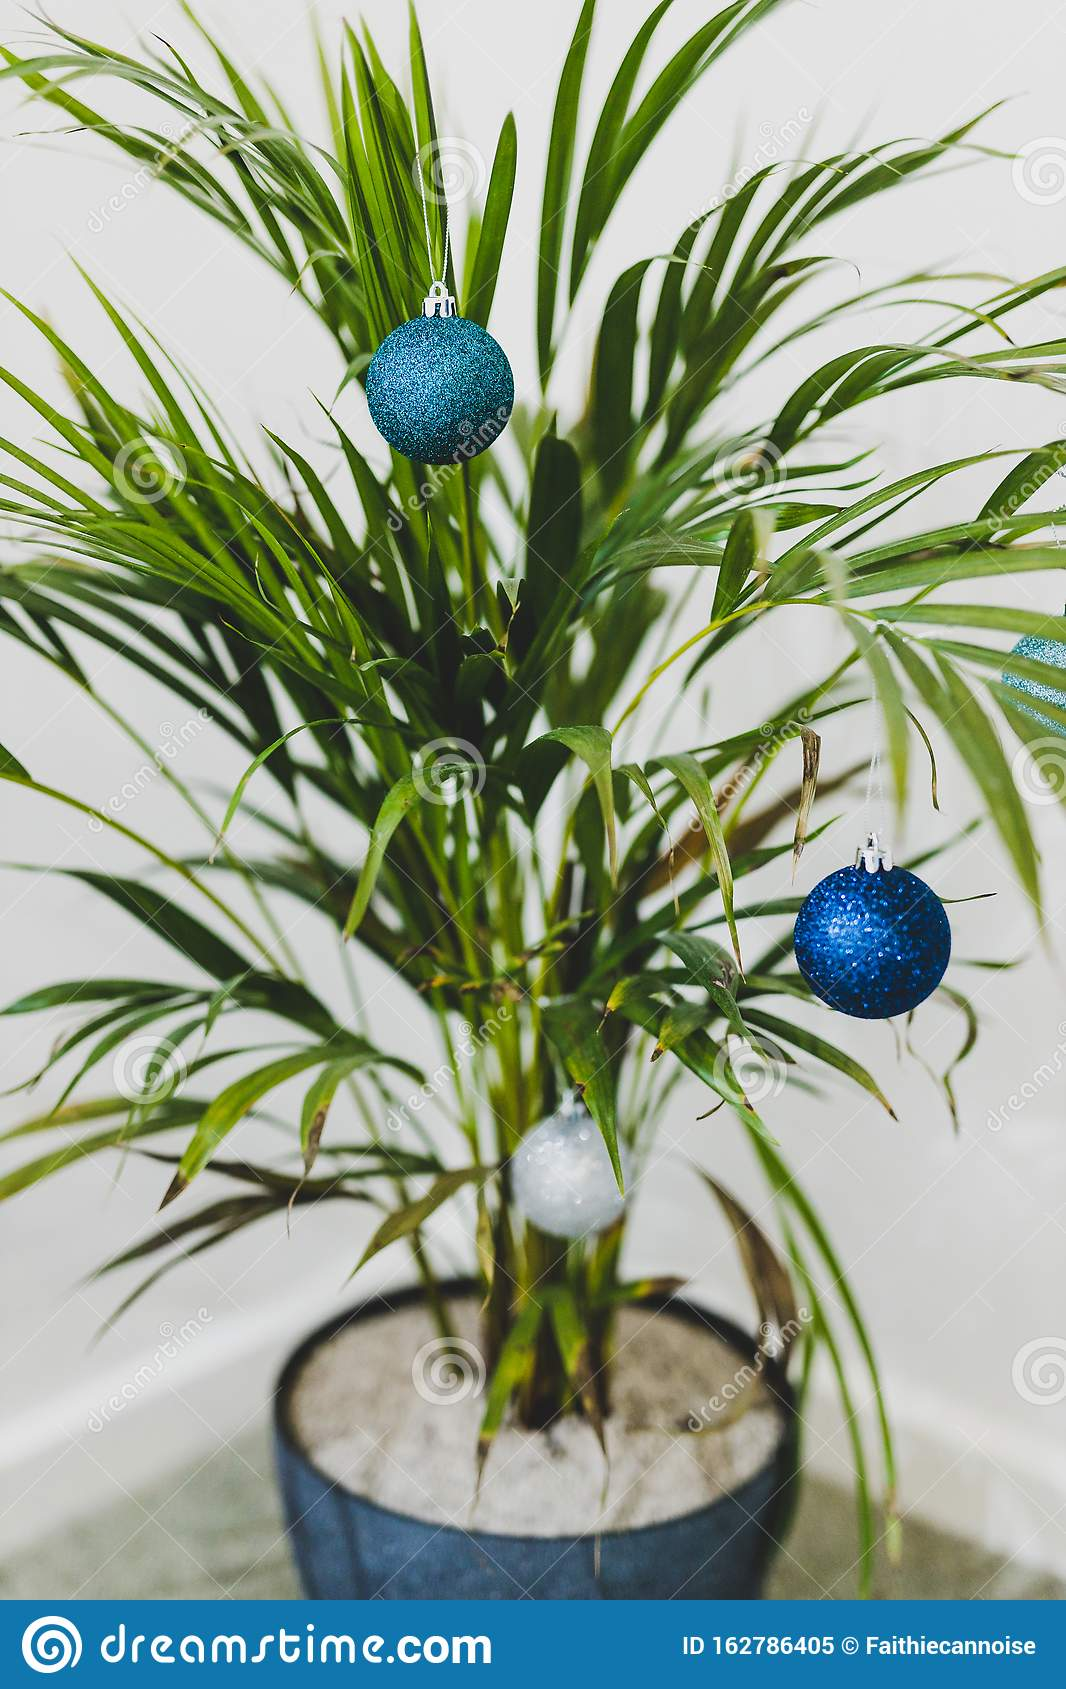 Alternative Christmas Tree Palm Plant With Christmas Baubles For The Festive Season In Summer For The Southern Hemisphere Stock Image Image Of Warm Celebration 162786405